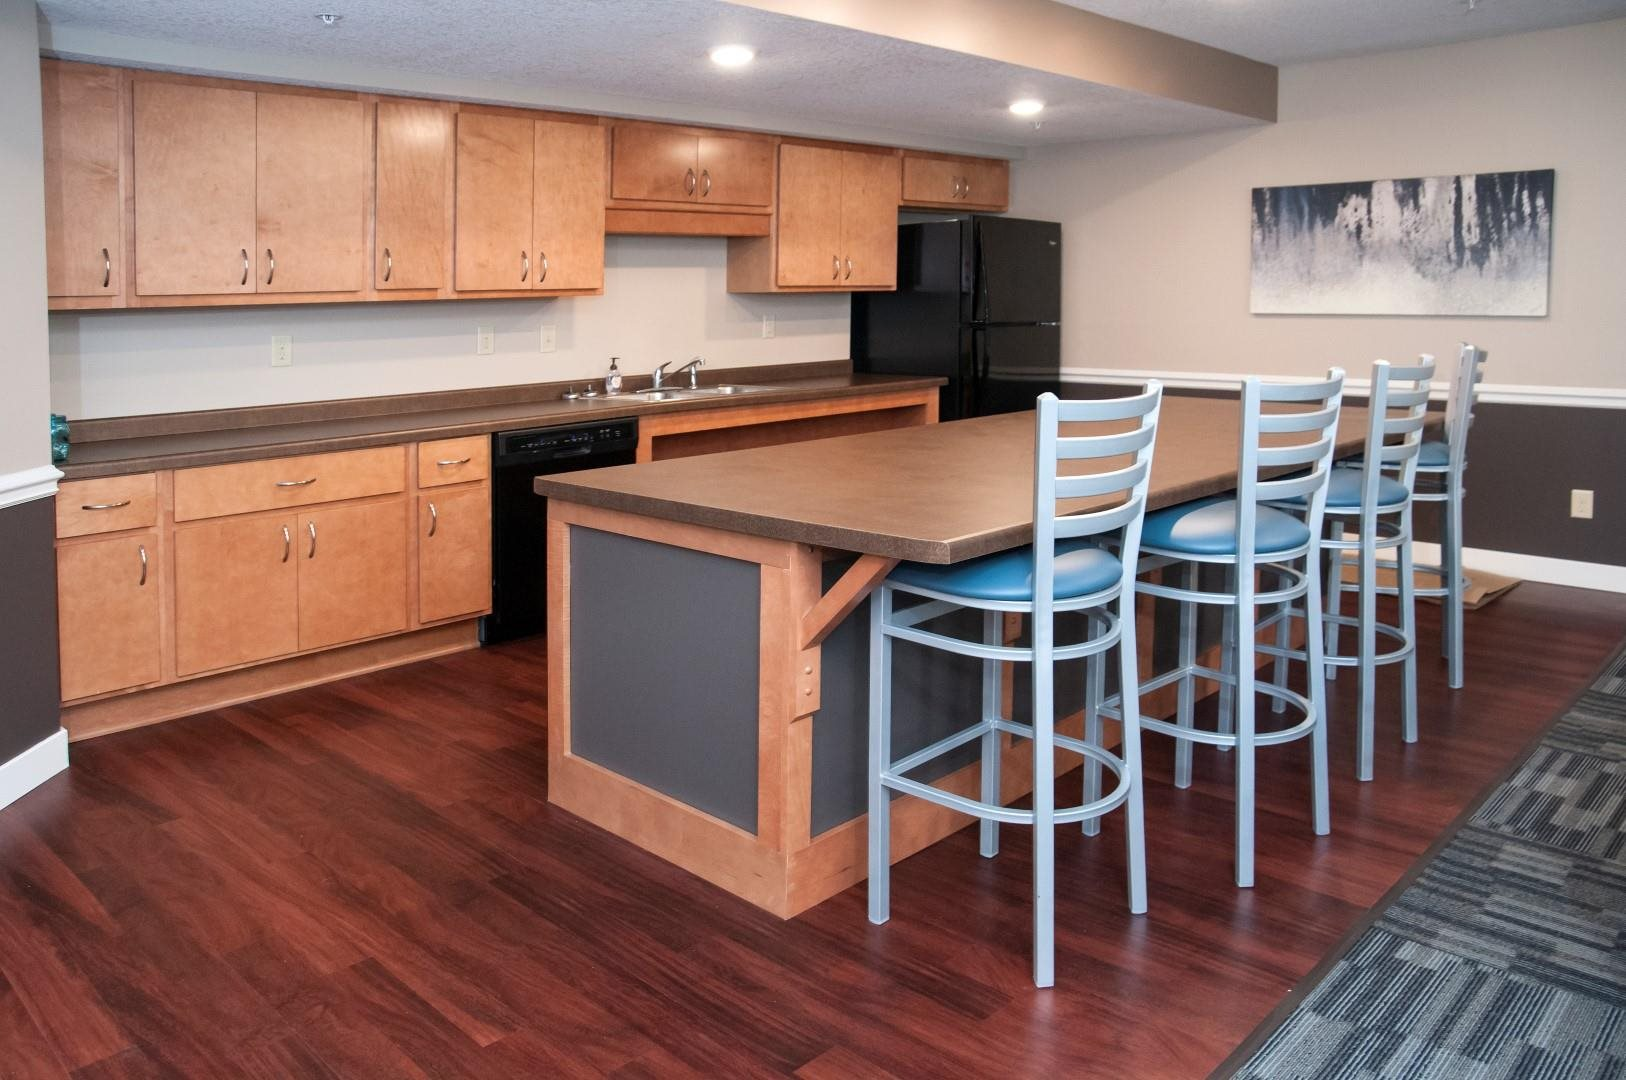 Kitchen in Community Room at Compass Pointe with Full Appliances and Bar with High Top Seating